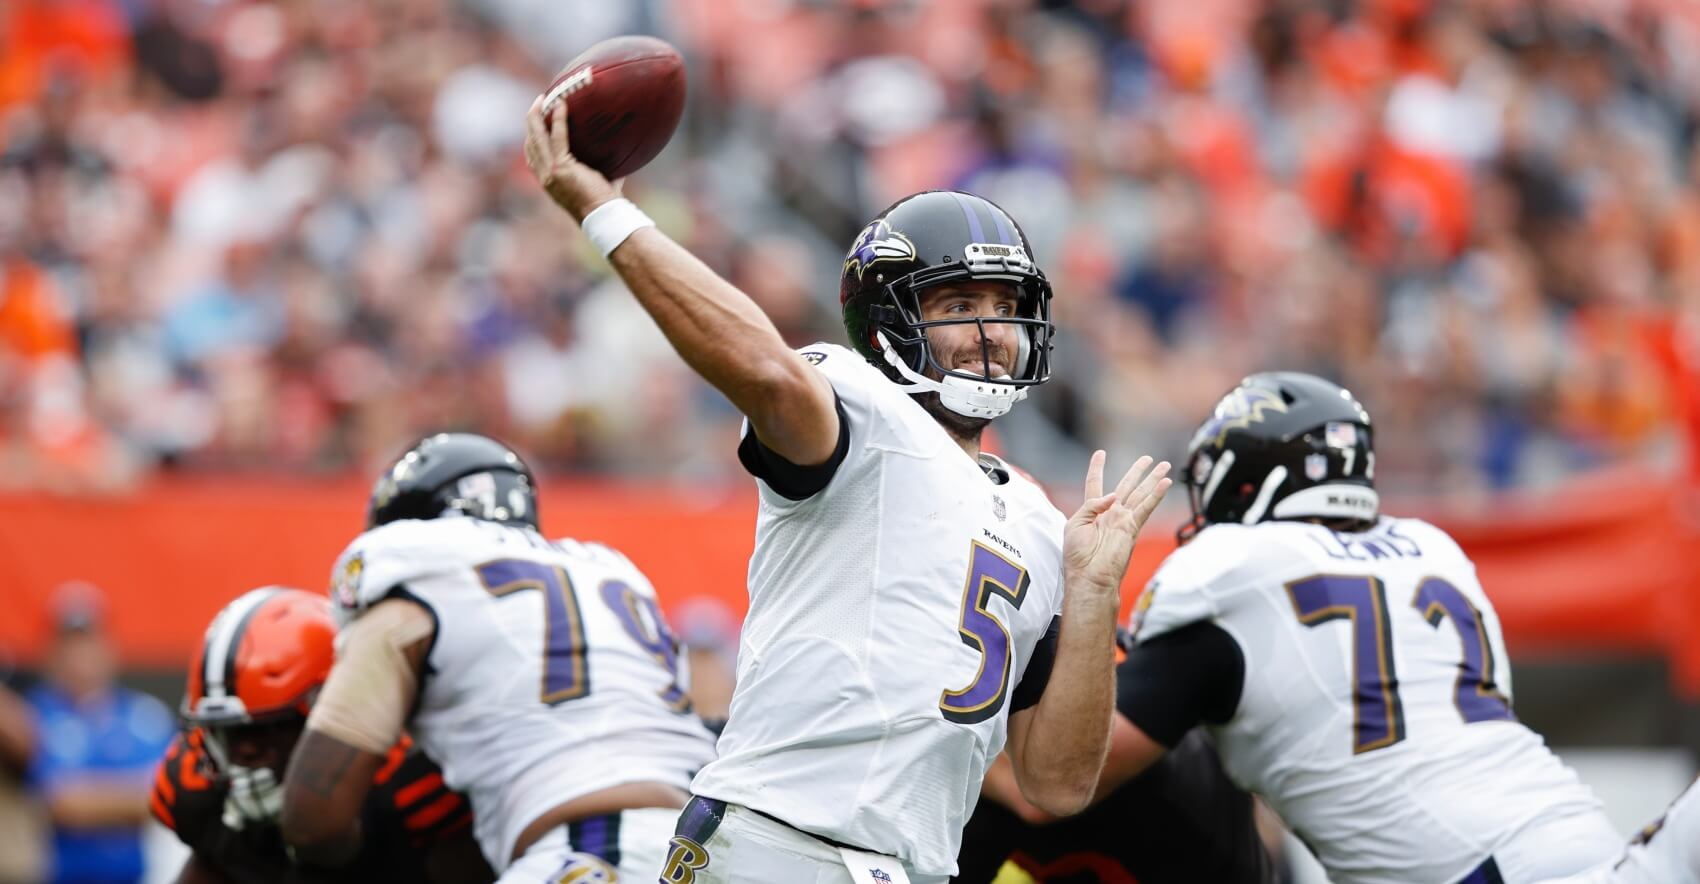 Fantasy Football: Decoding the Top 12 QBs for Week 7